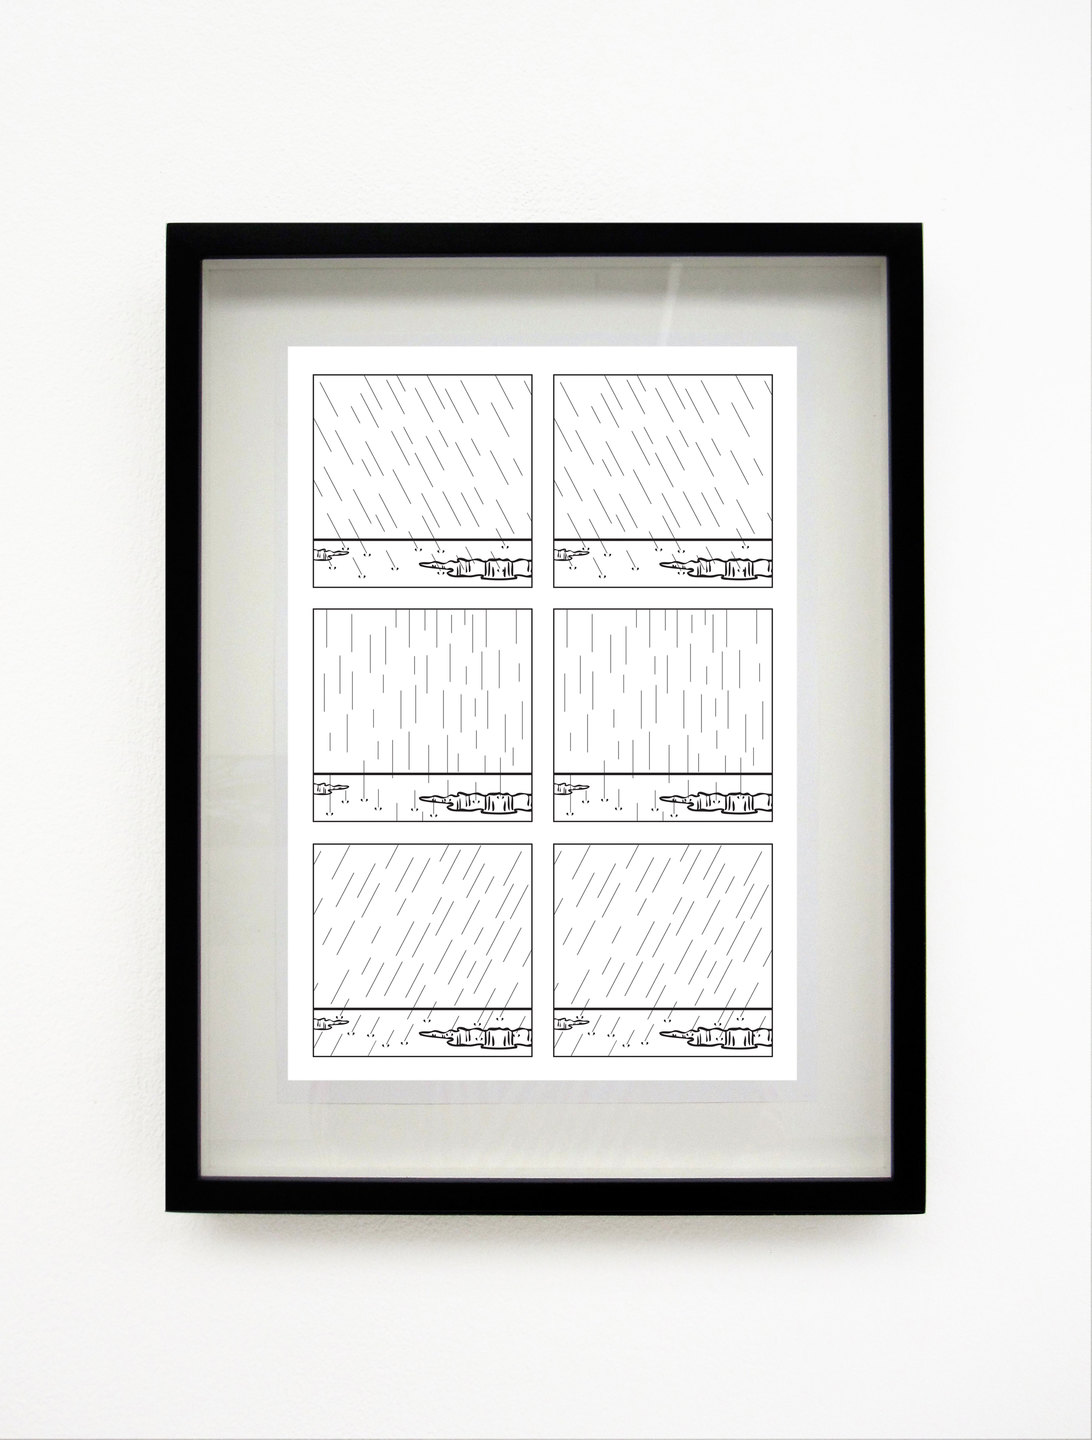 Tom Godfrey, Untitled (Rain), 2011, Hand-printed lithograph, (29.7 x 21 cm), Ed 5 + 2AP, Cell Project Space